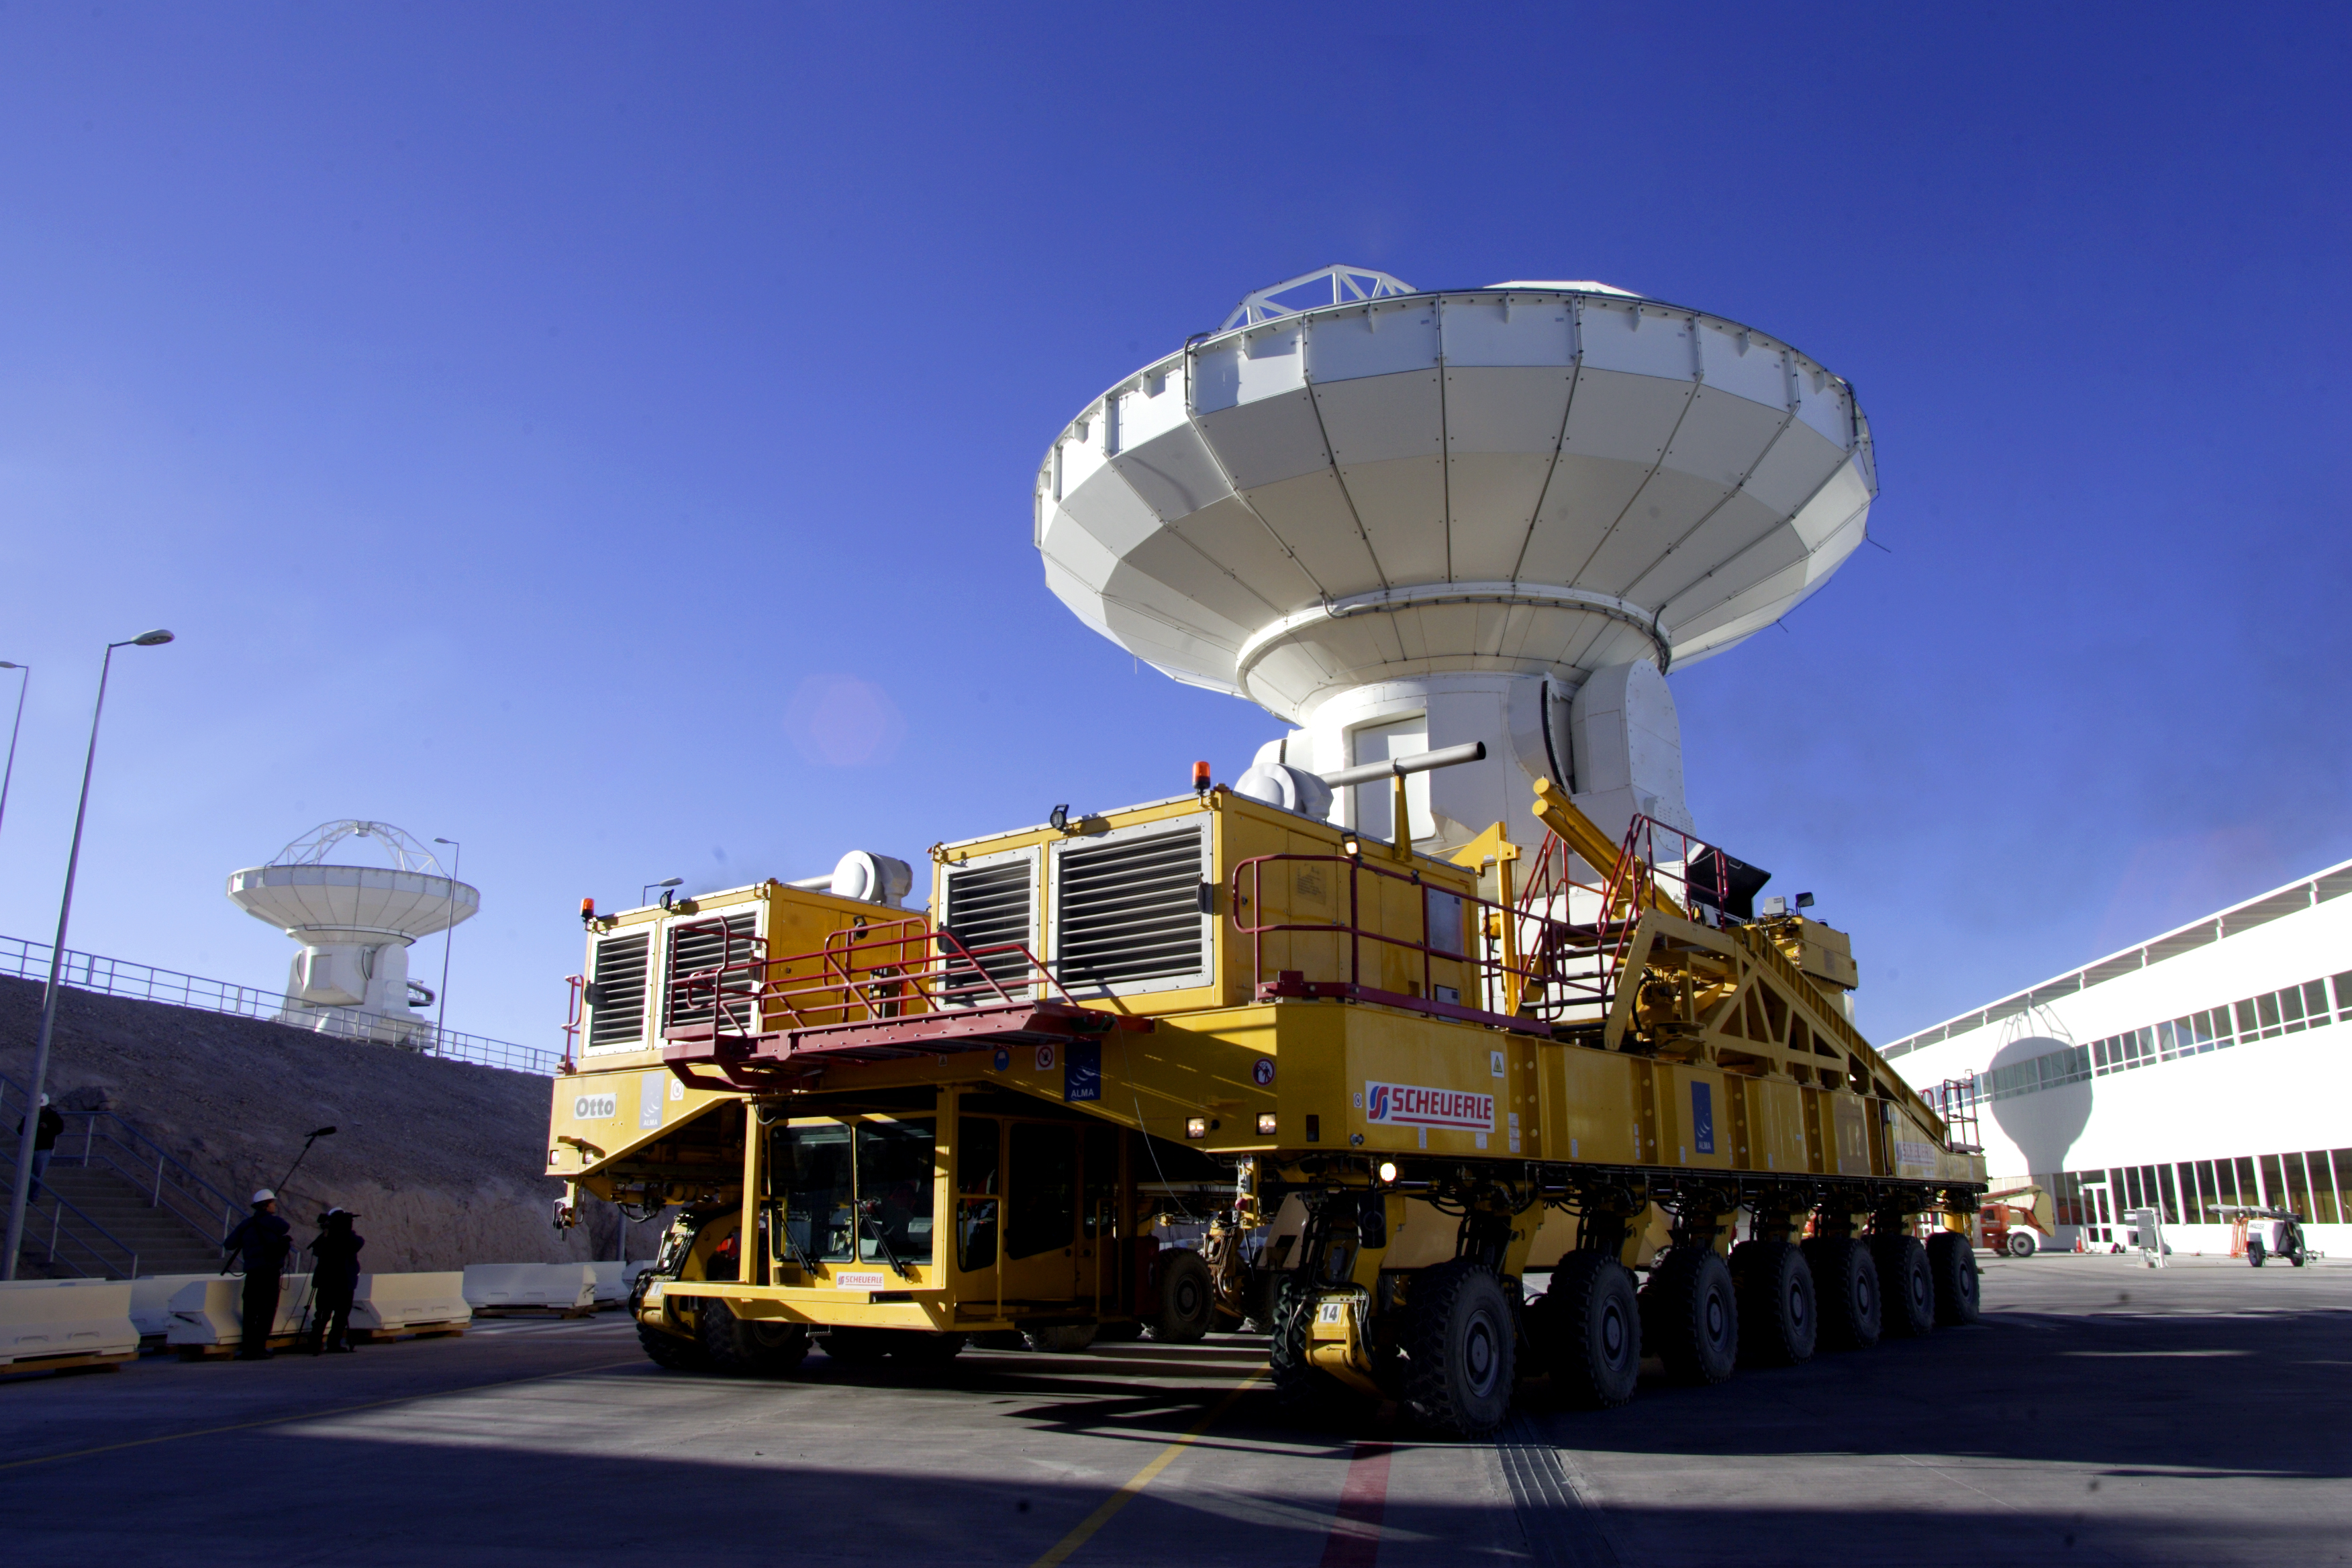 ALMA antenna and Transporter